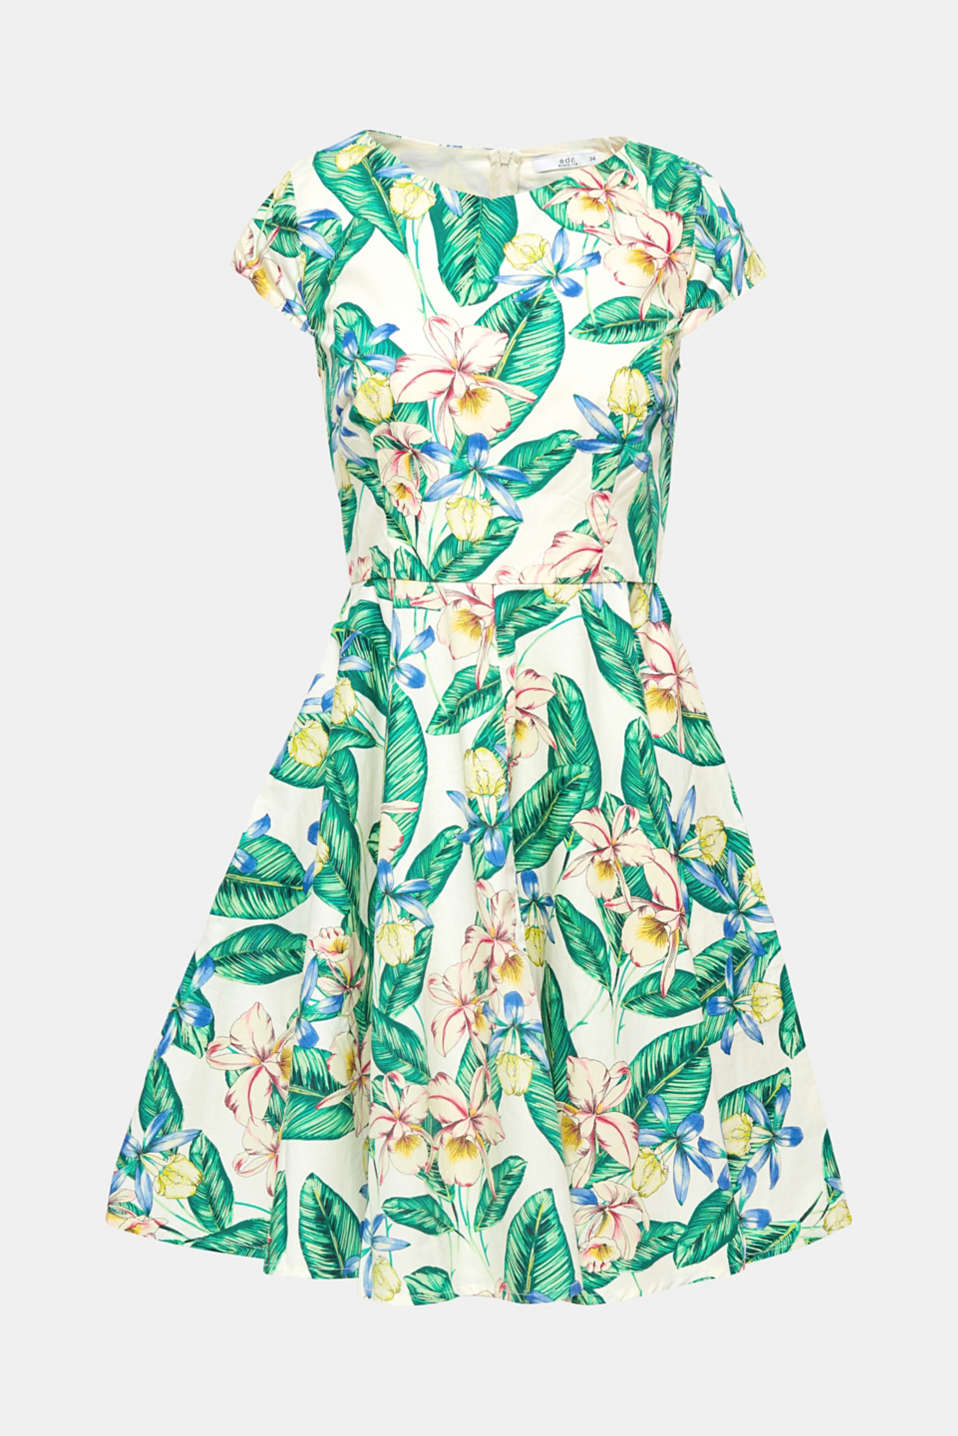 This dress owes its fashionable retro charm to its swirling silhouette and trendy print with tropical flowers.